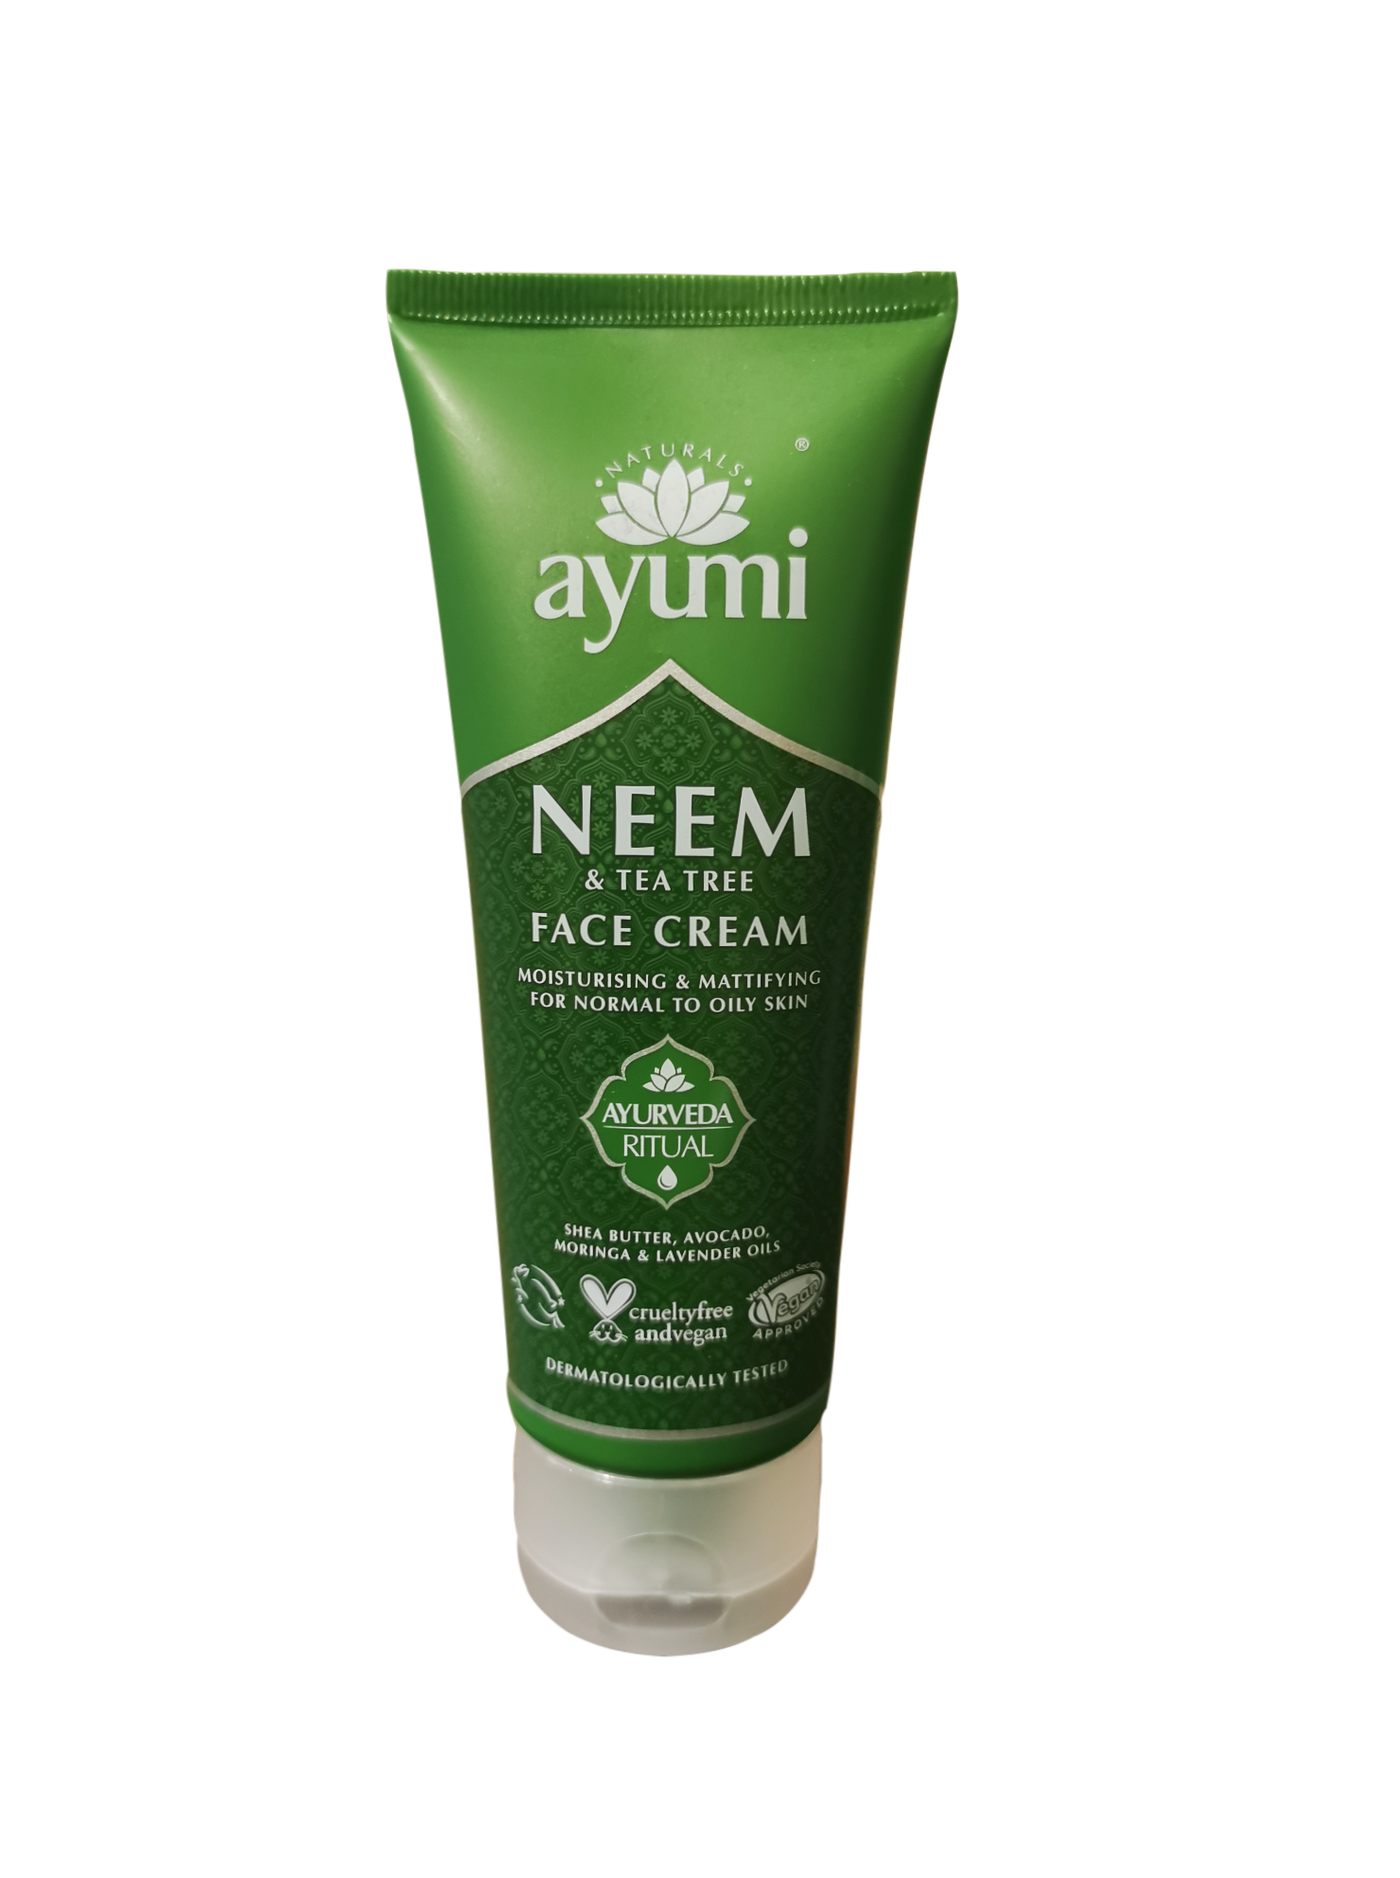 Ayumi Neem & Tea Tree Face Cream